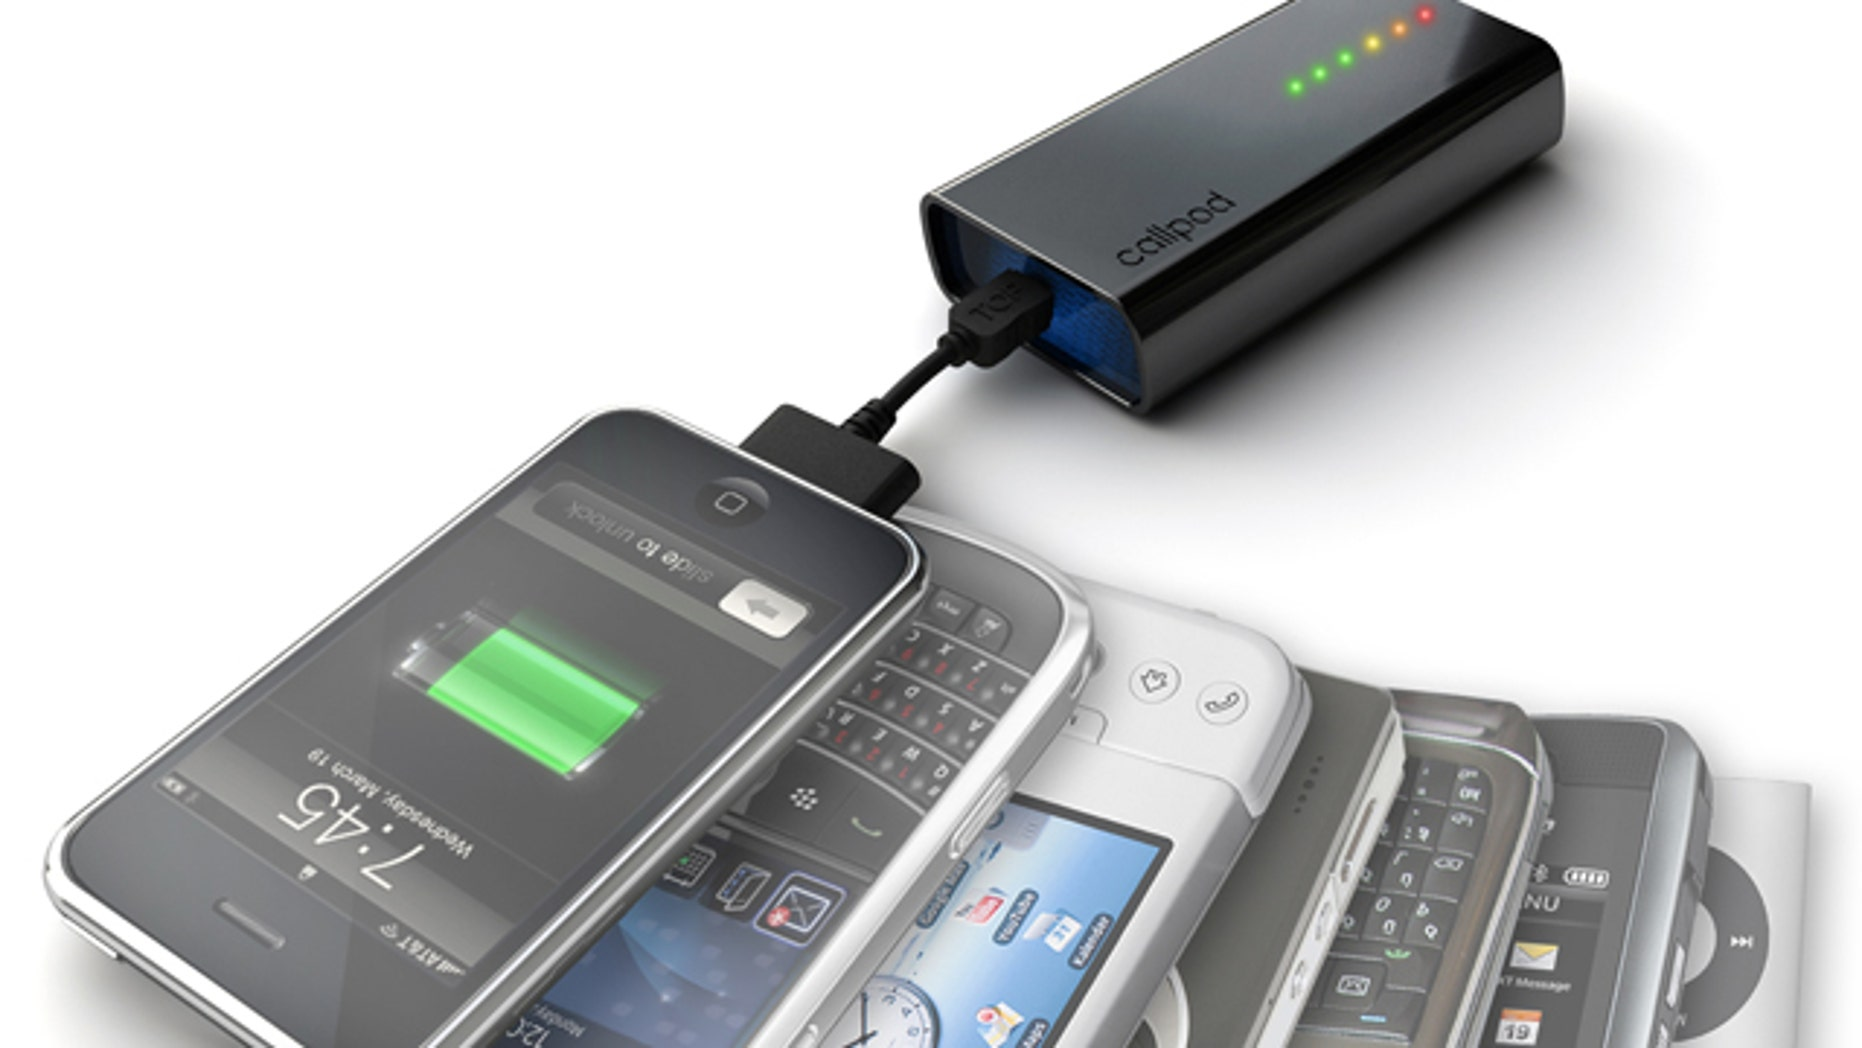 Suffering from post-gift-giving withdrawal? Buy a gadget for your new gadget, such as the Callpod Fueltank Uno, a battery pack that comes with an assortment of adapters to recharge all of your portable gadgets.